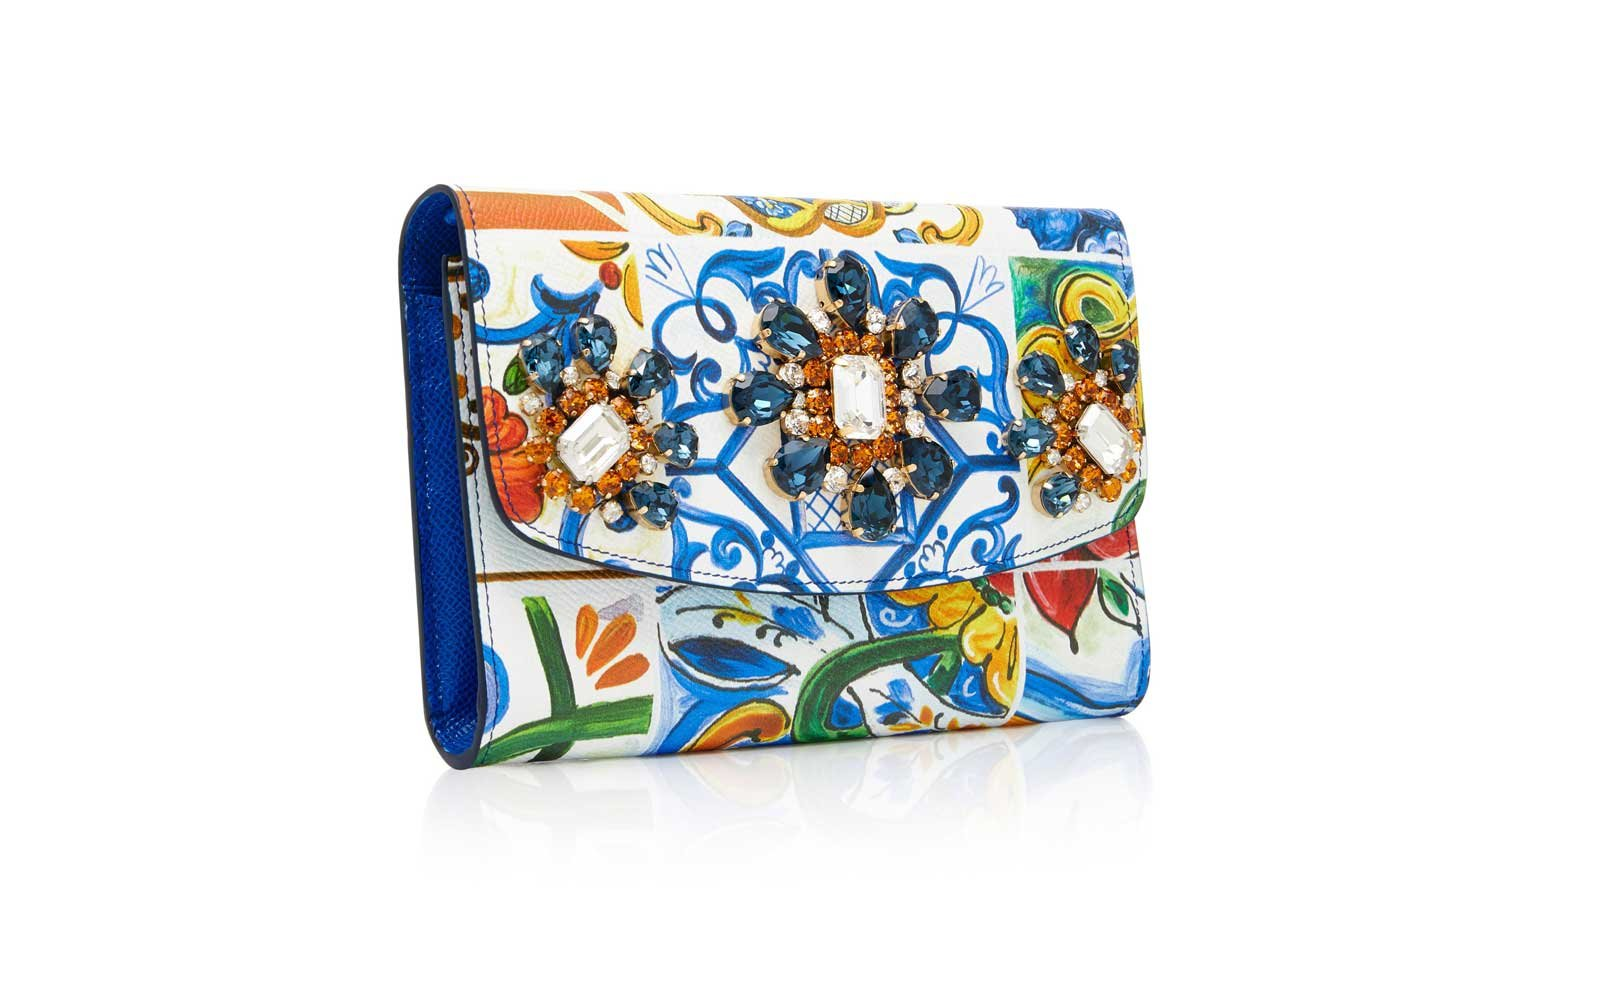 Dolce & Gabbana Crystal-Embellished Printed Leather Wallet Bag